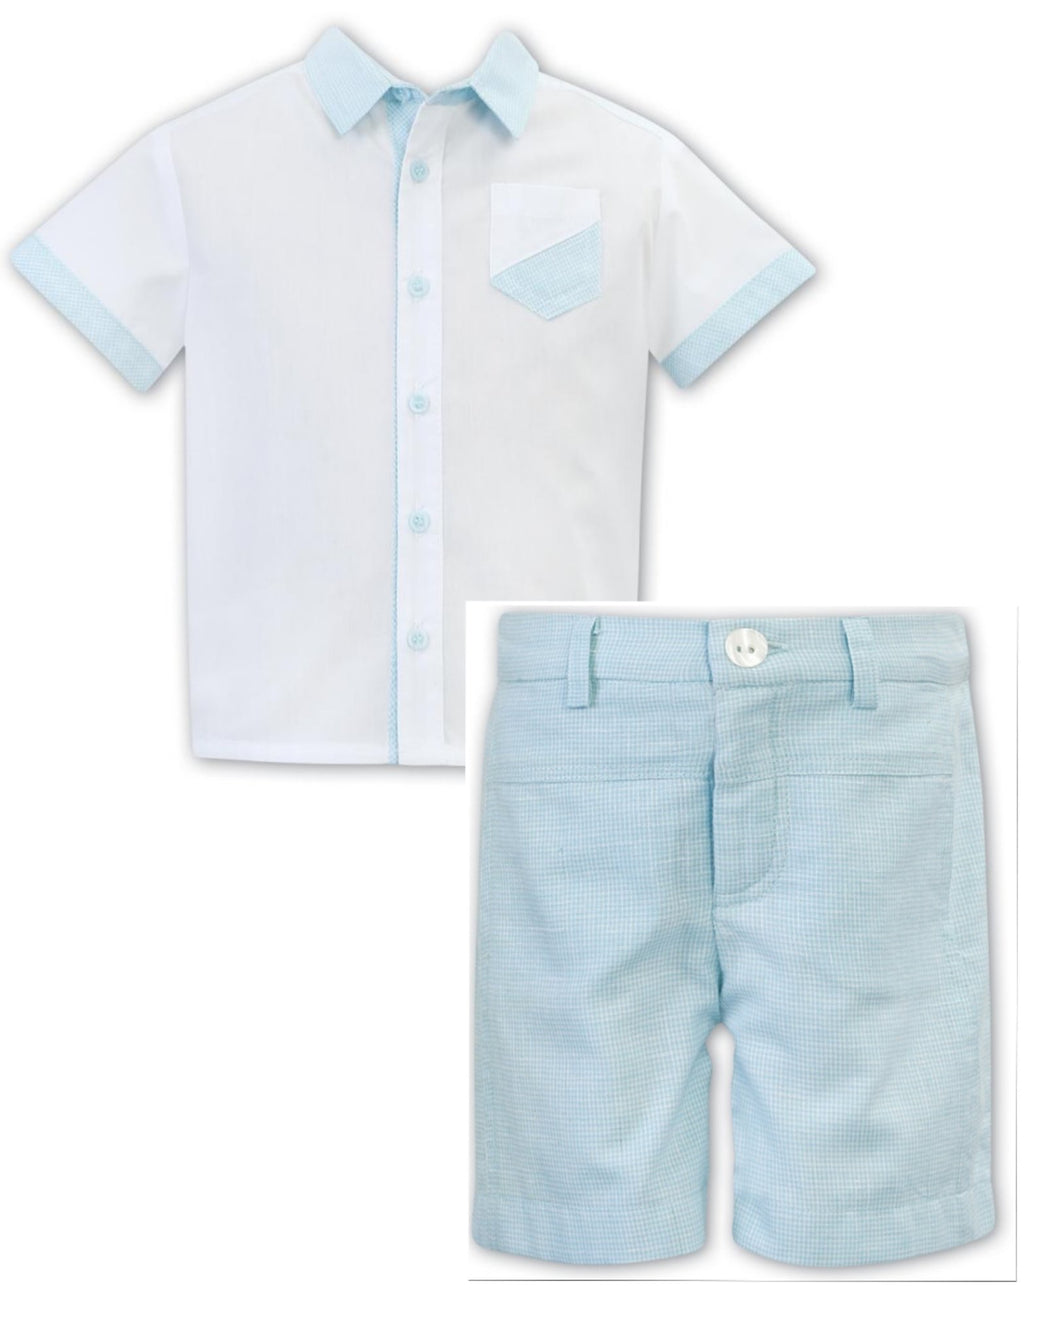 Boys Short Sleeved Shirt with Contrasting Trim on Sleeves, Pocket and Collar woth Matching 5 Pocket Shorts, Adjustable Waist